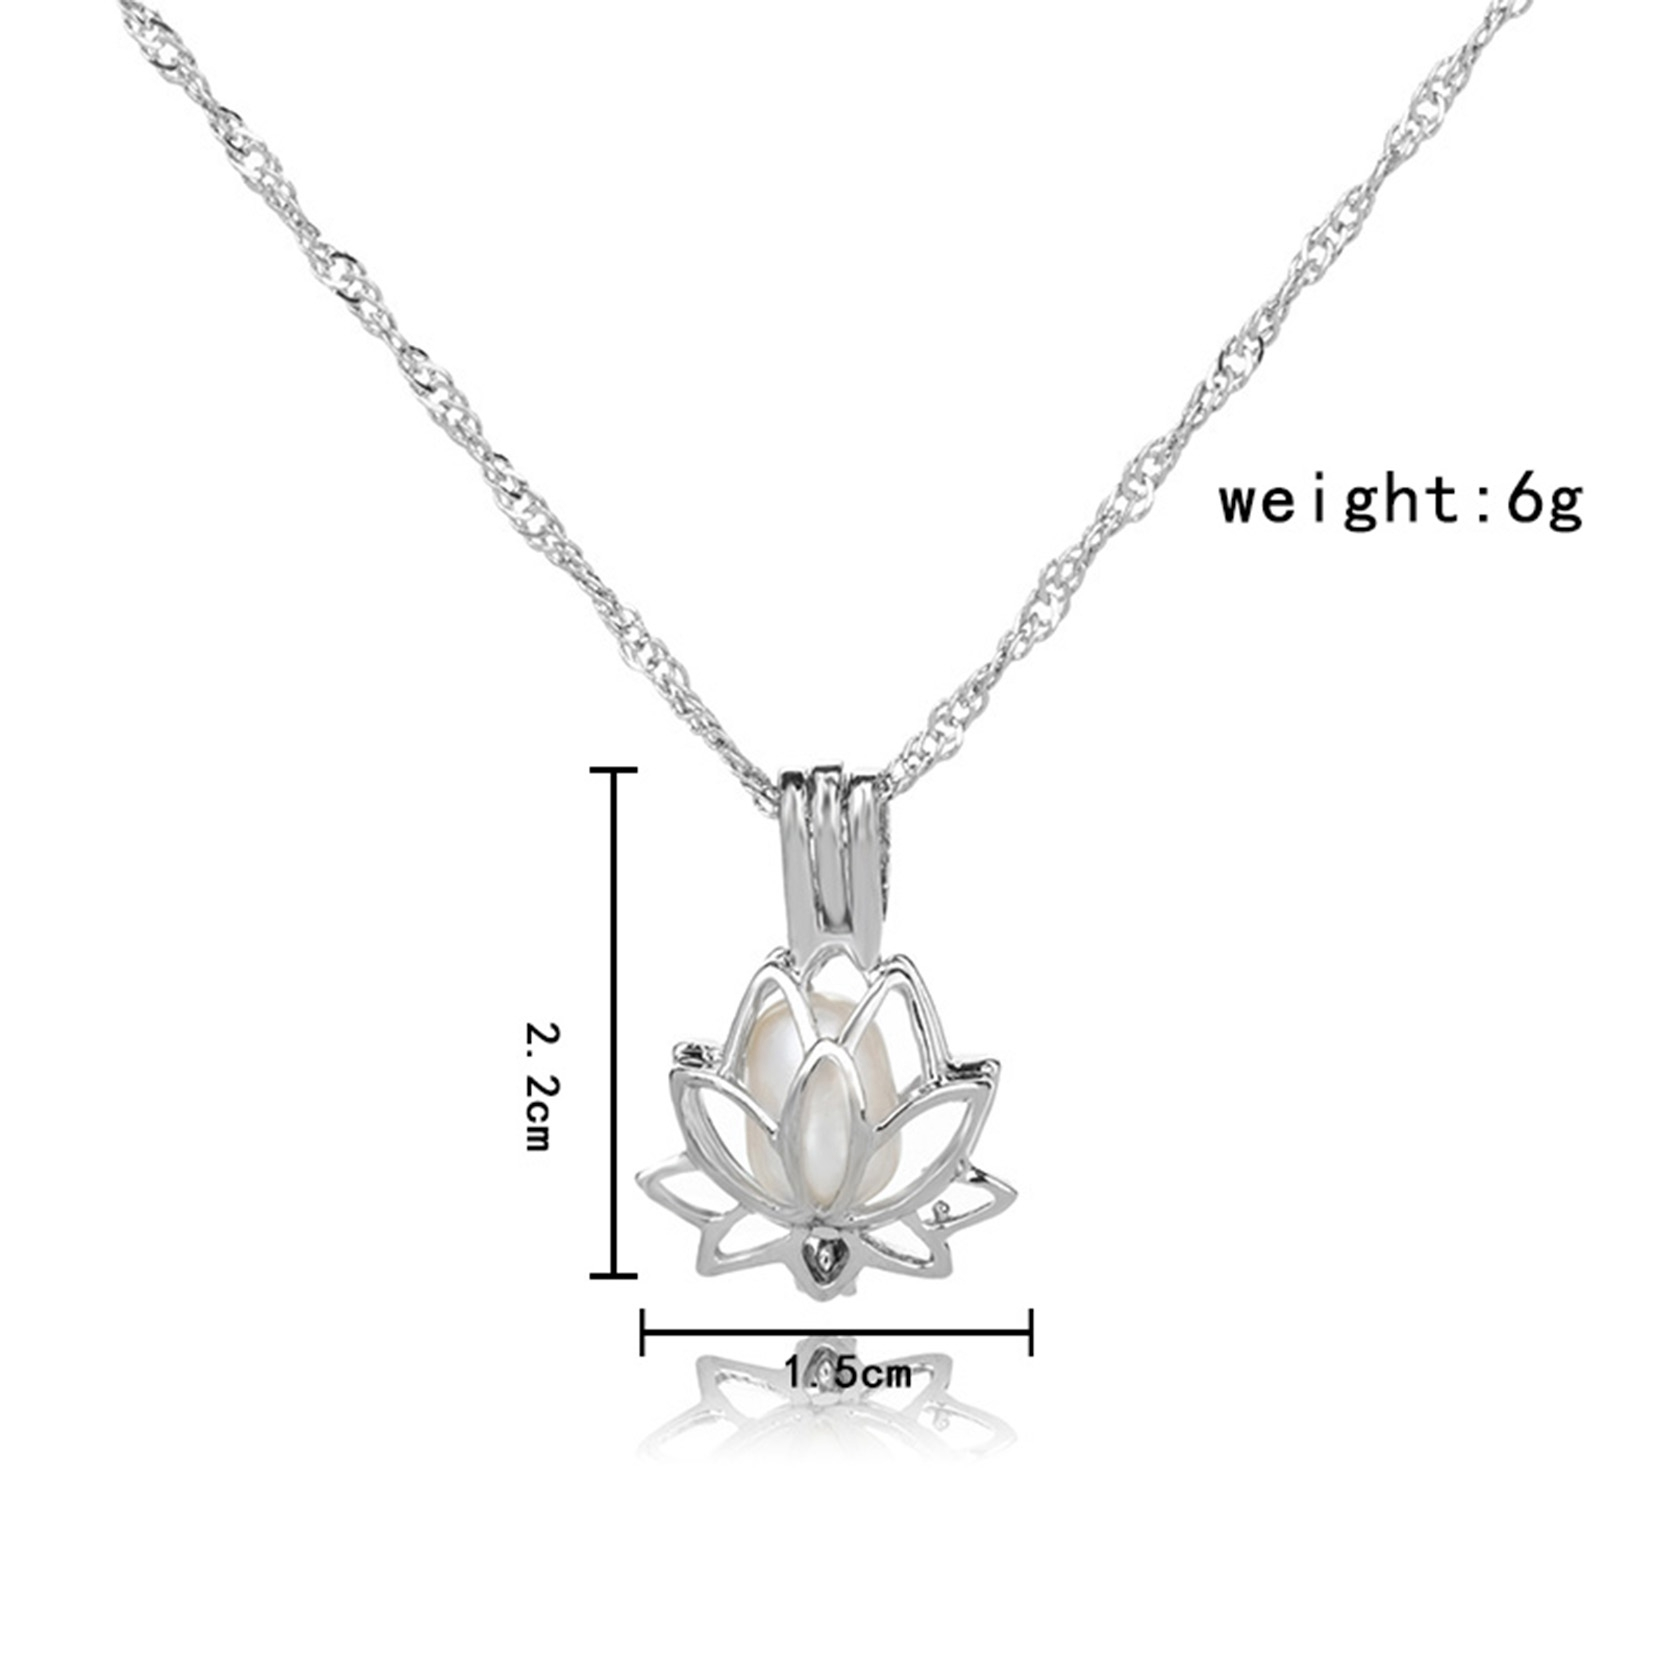 3 colors lotus flower pendant necklace charm chain pendant glow in 3 colors lotus flower pendant necklace charm chain pendant glow in the dark choker statement necklace luminous party jewelry in choker necklaces from izmirmasajfo